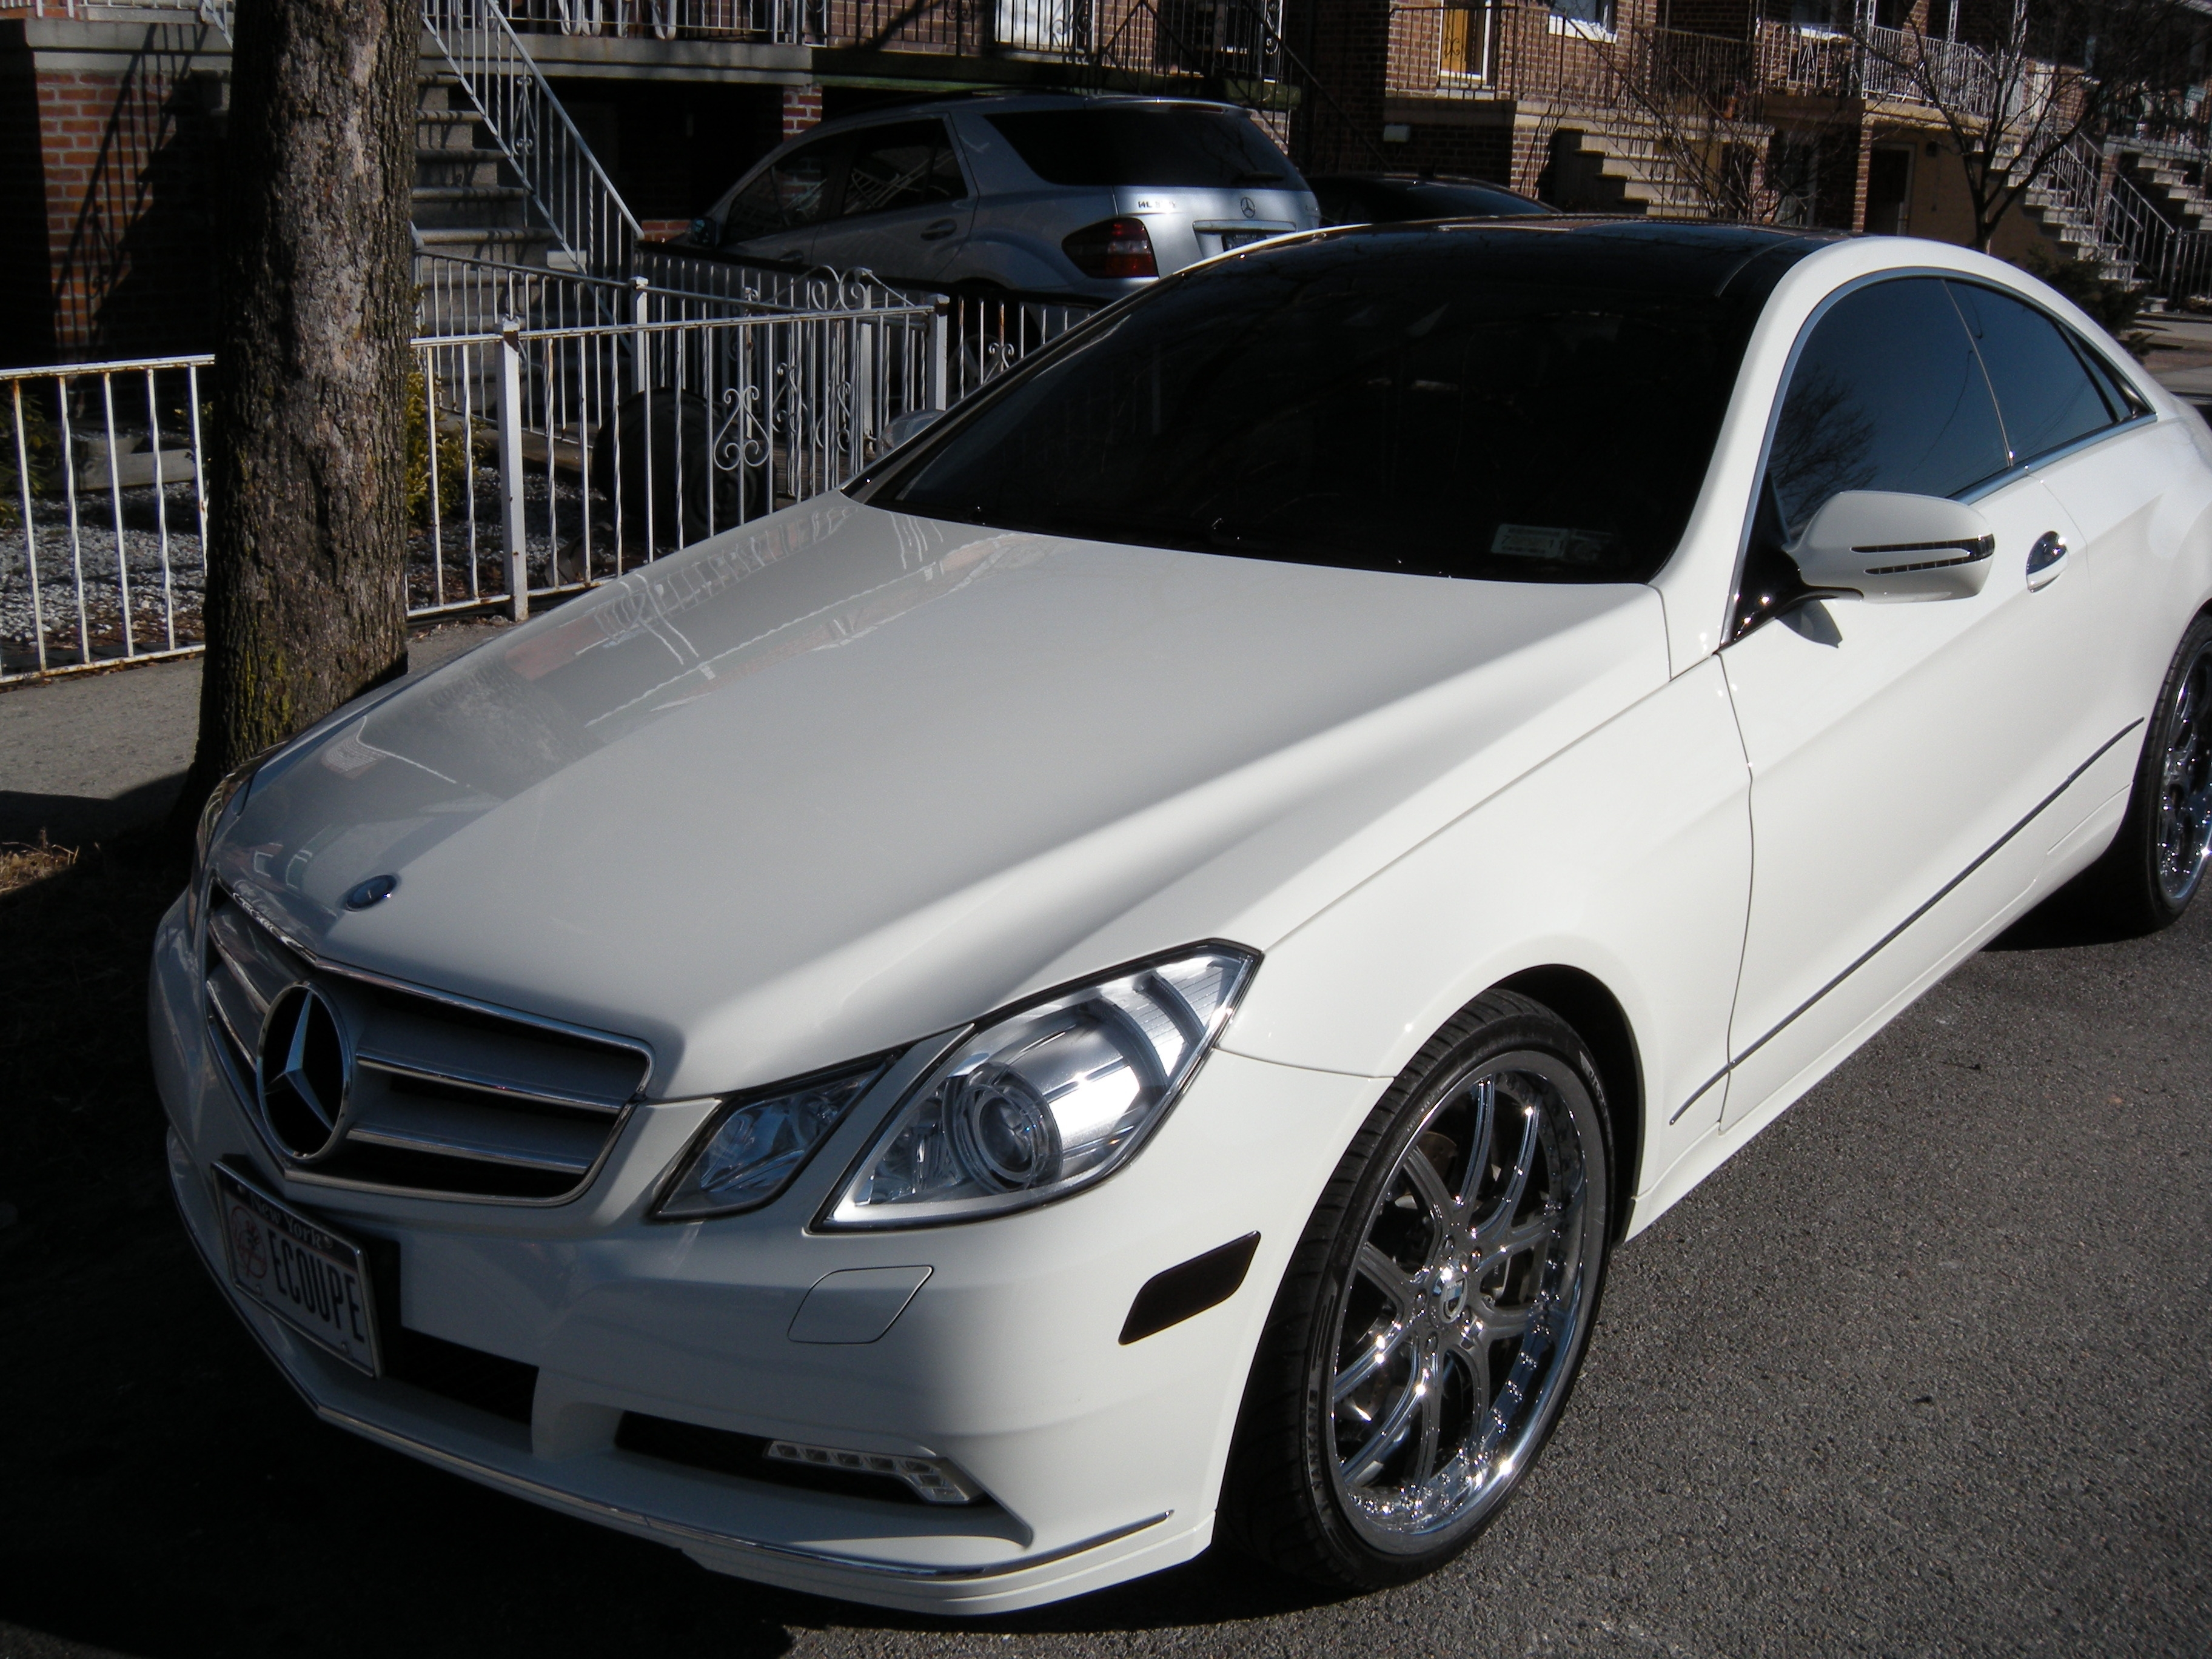 YoUnG_MoNeY_BX 2010 Mercedes-Benz E-Class 13358734